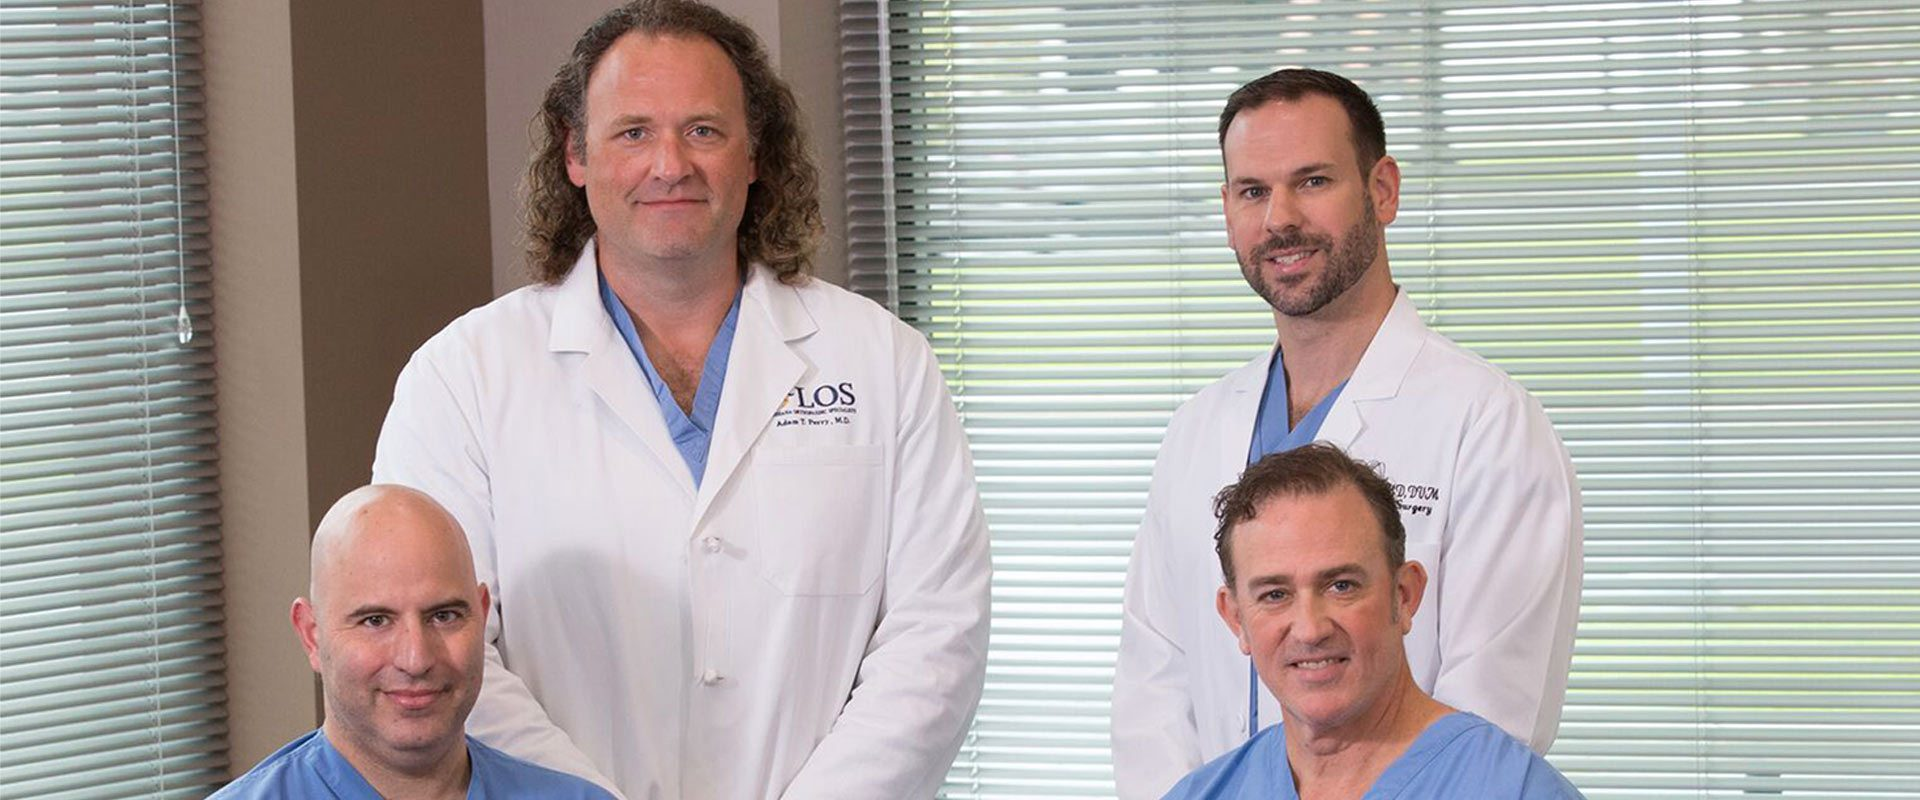 Total Joint Replacement Surgery - Louisiana Orthopaedic